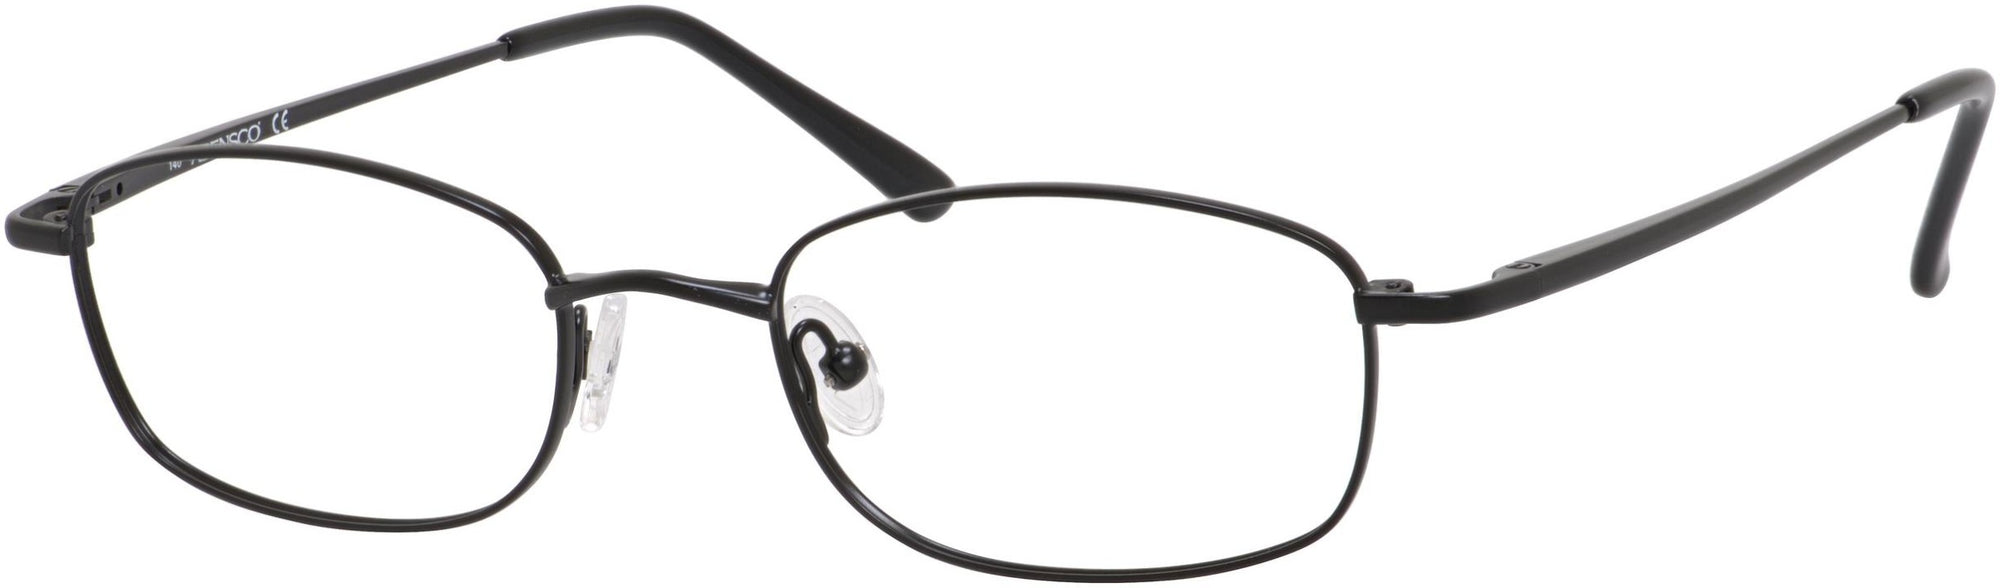 Adensco AD 106 Rectangular Eyeglasses 0003-0003  Matte Black (00 Demo Lens)